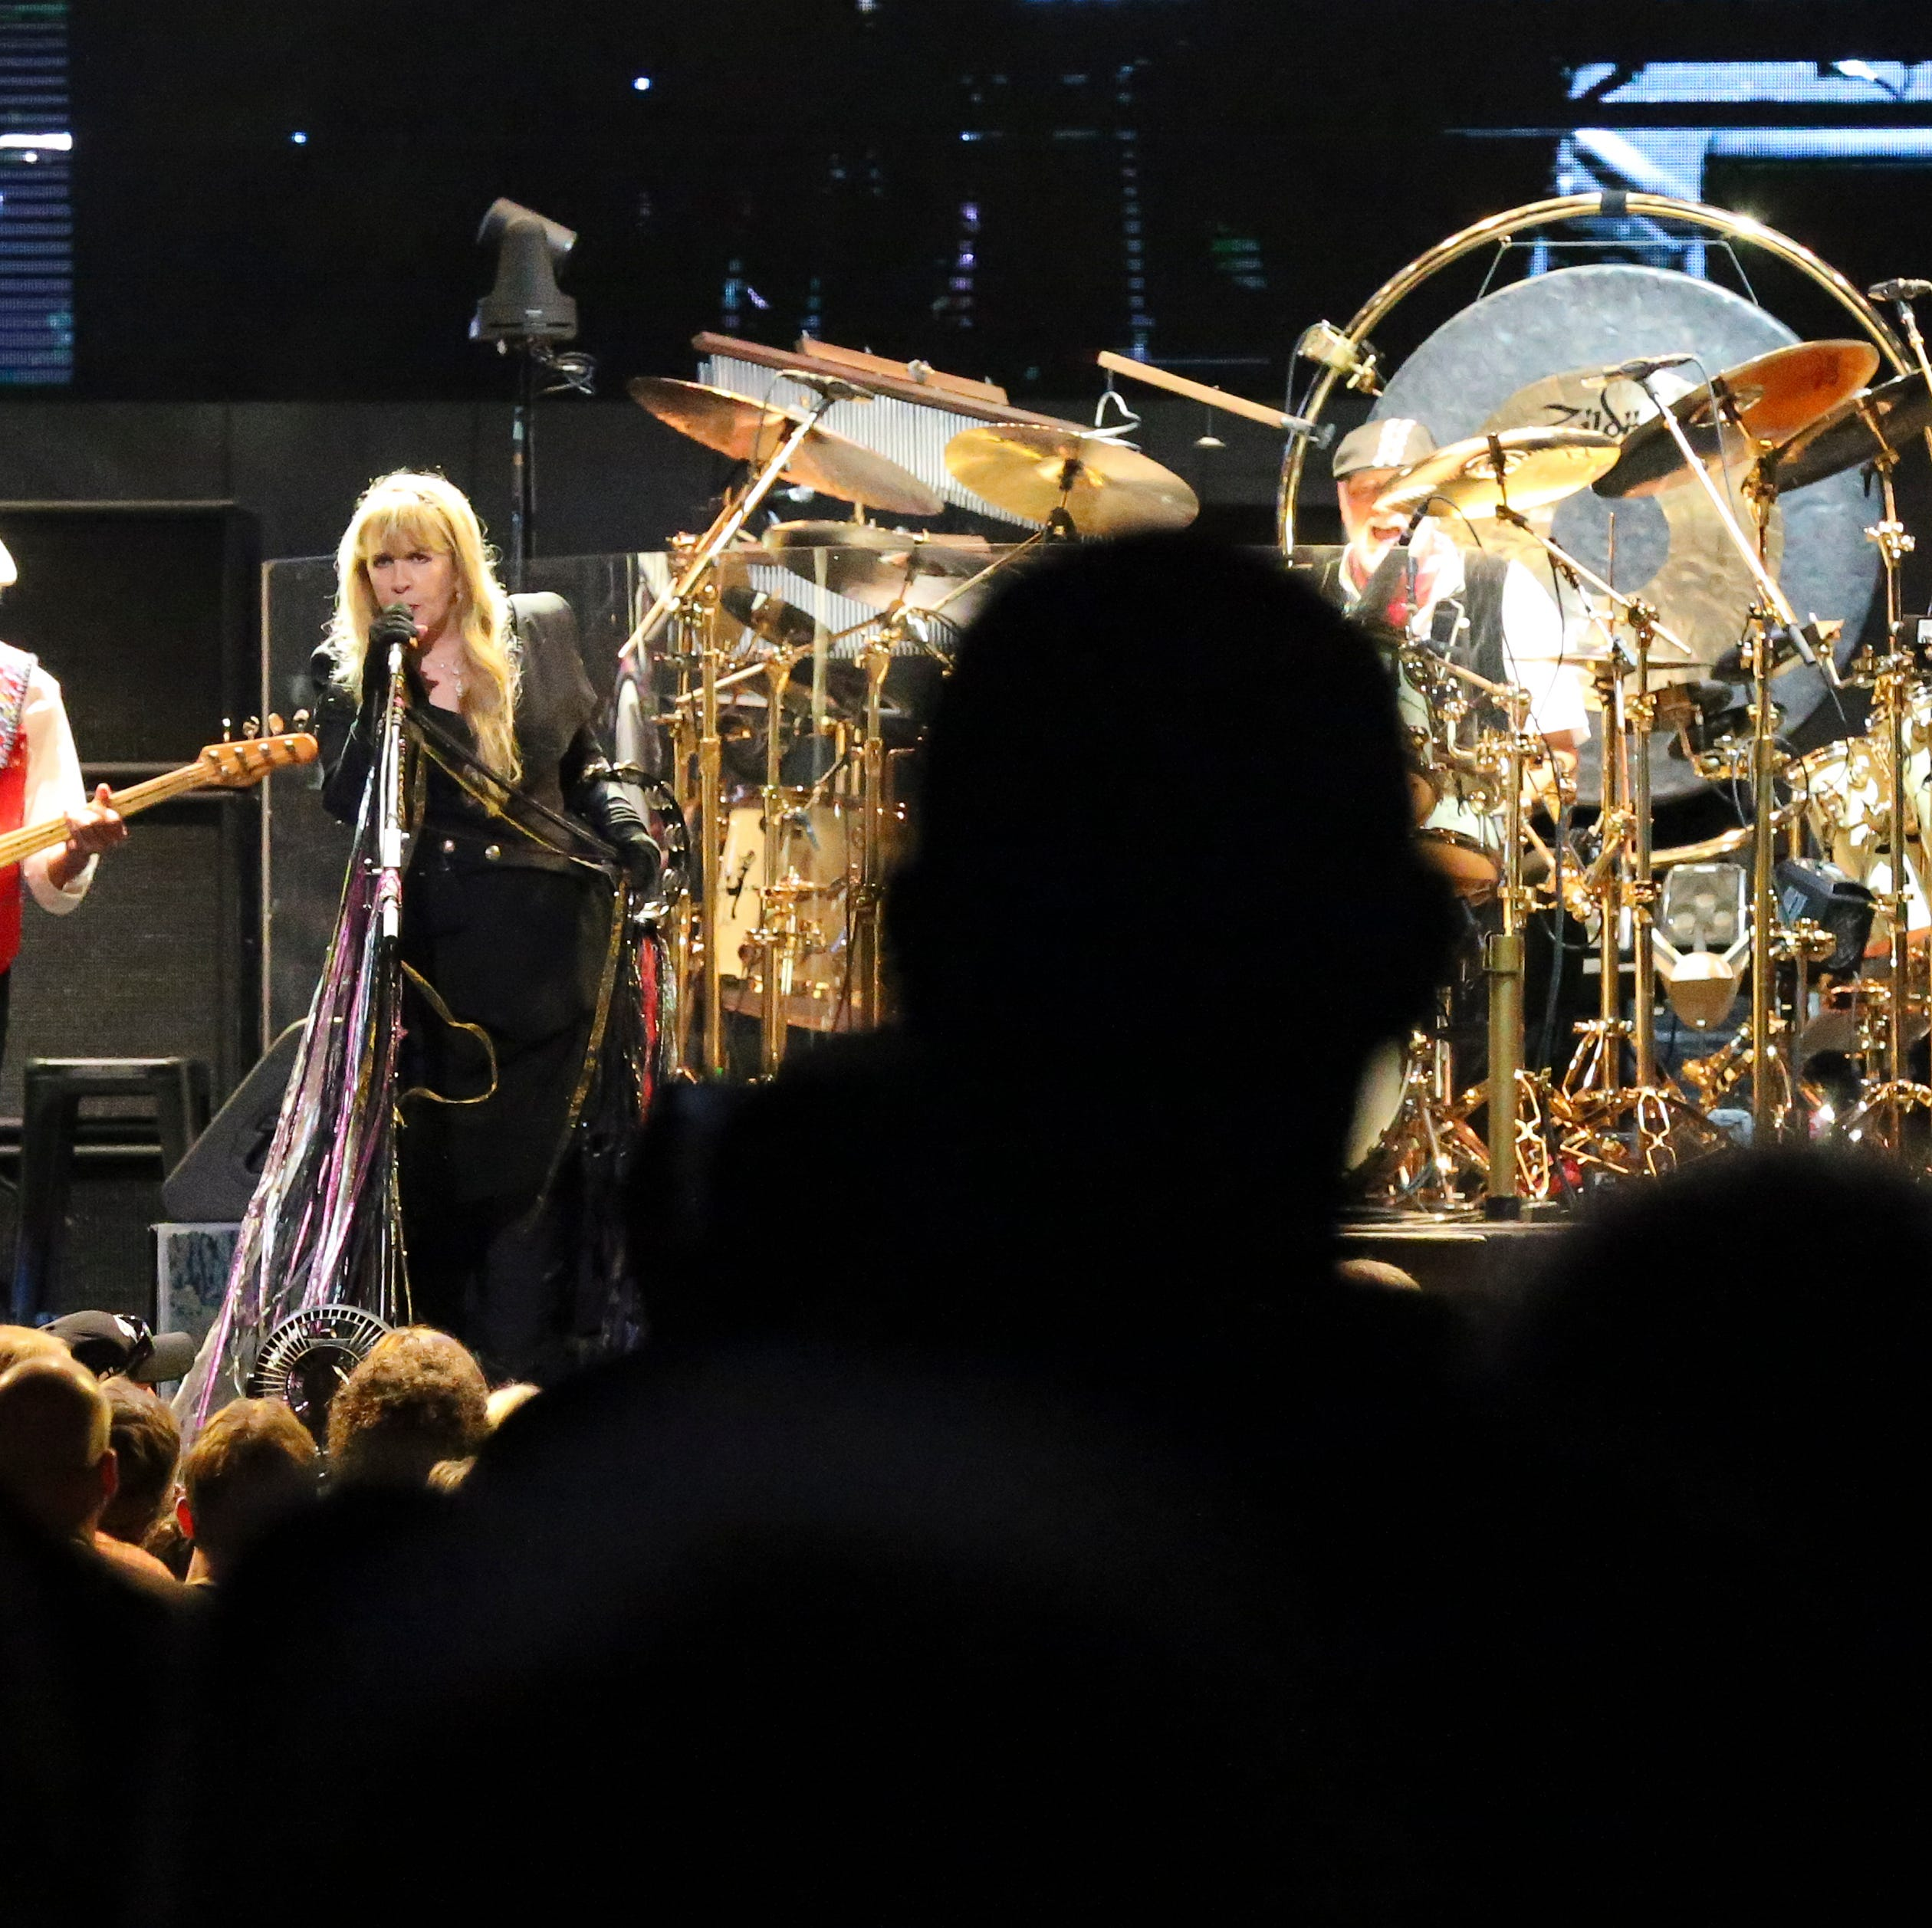 Fleetwood Mac concert postponed to February